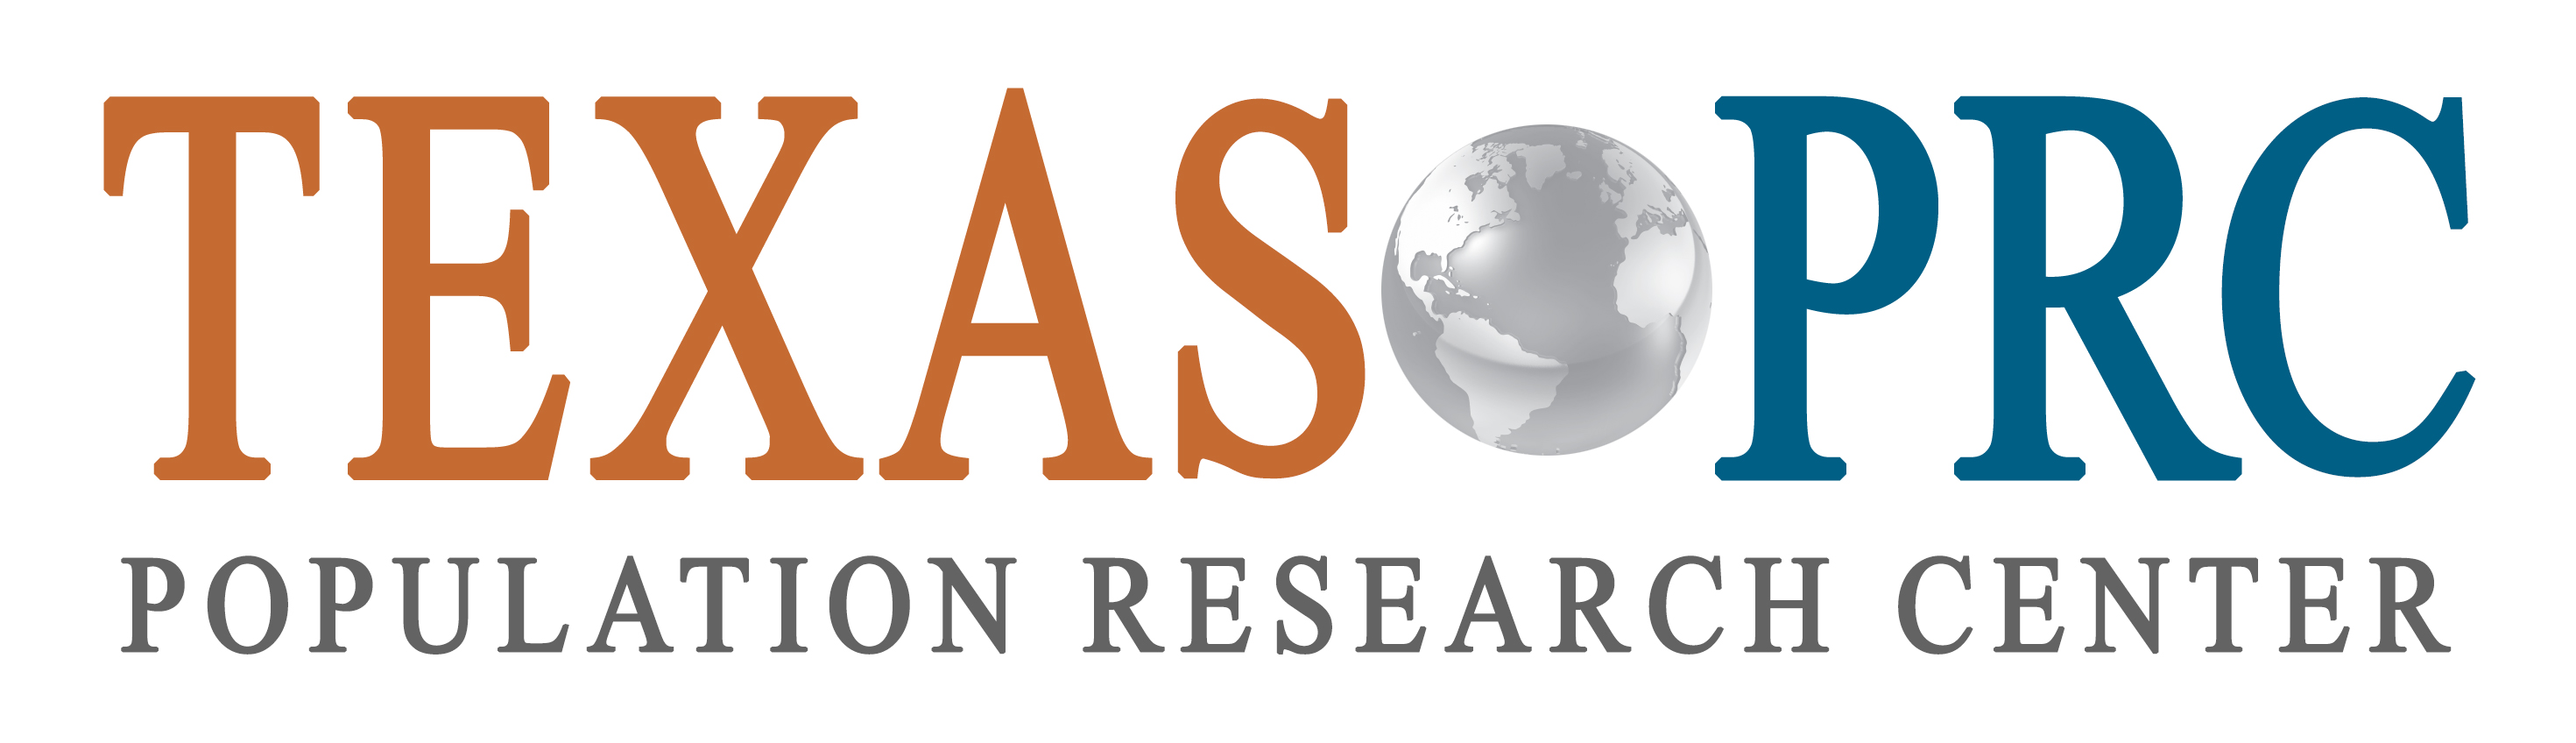 Population Research Center logo